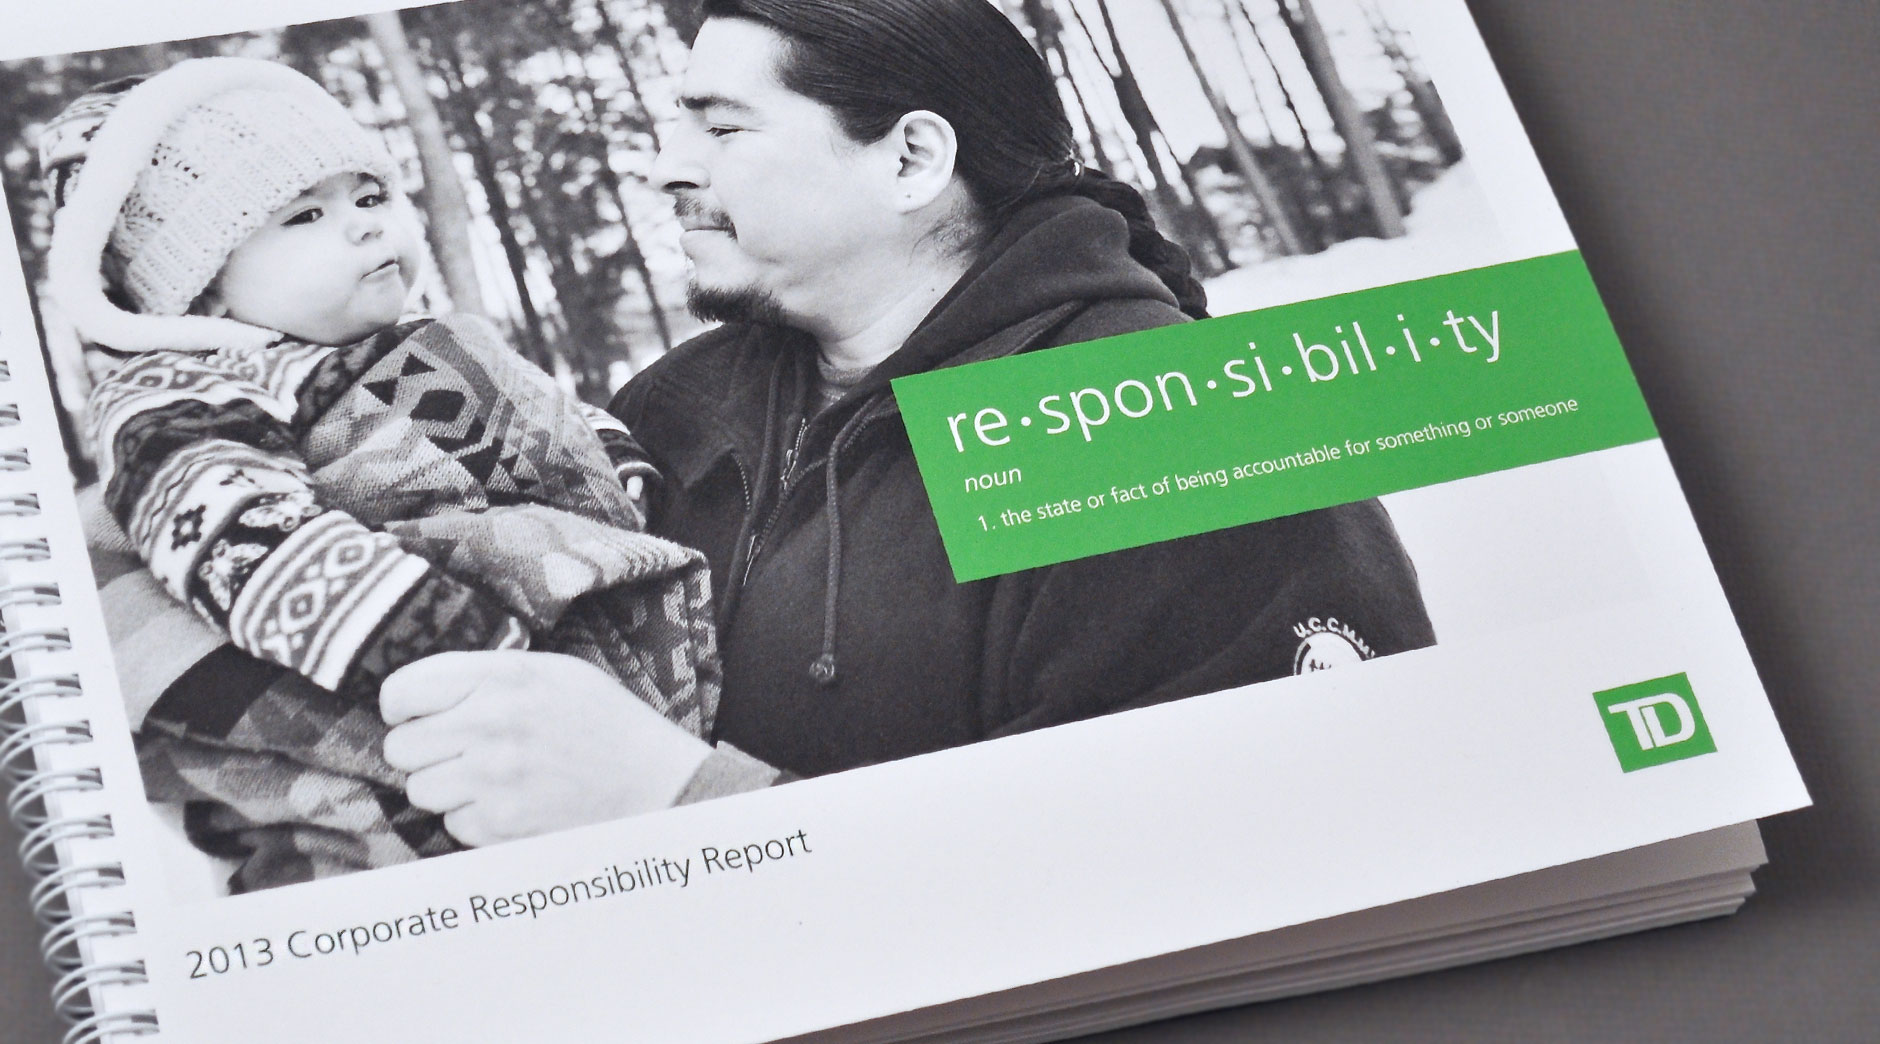 TD Corporate Responsibility print cover